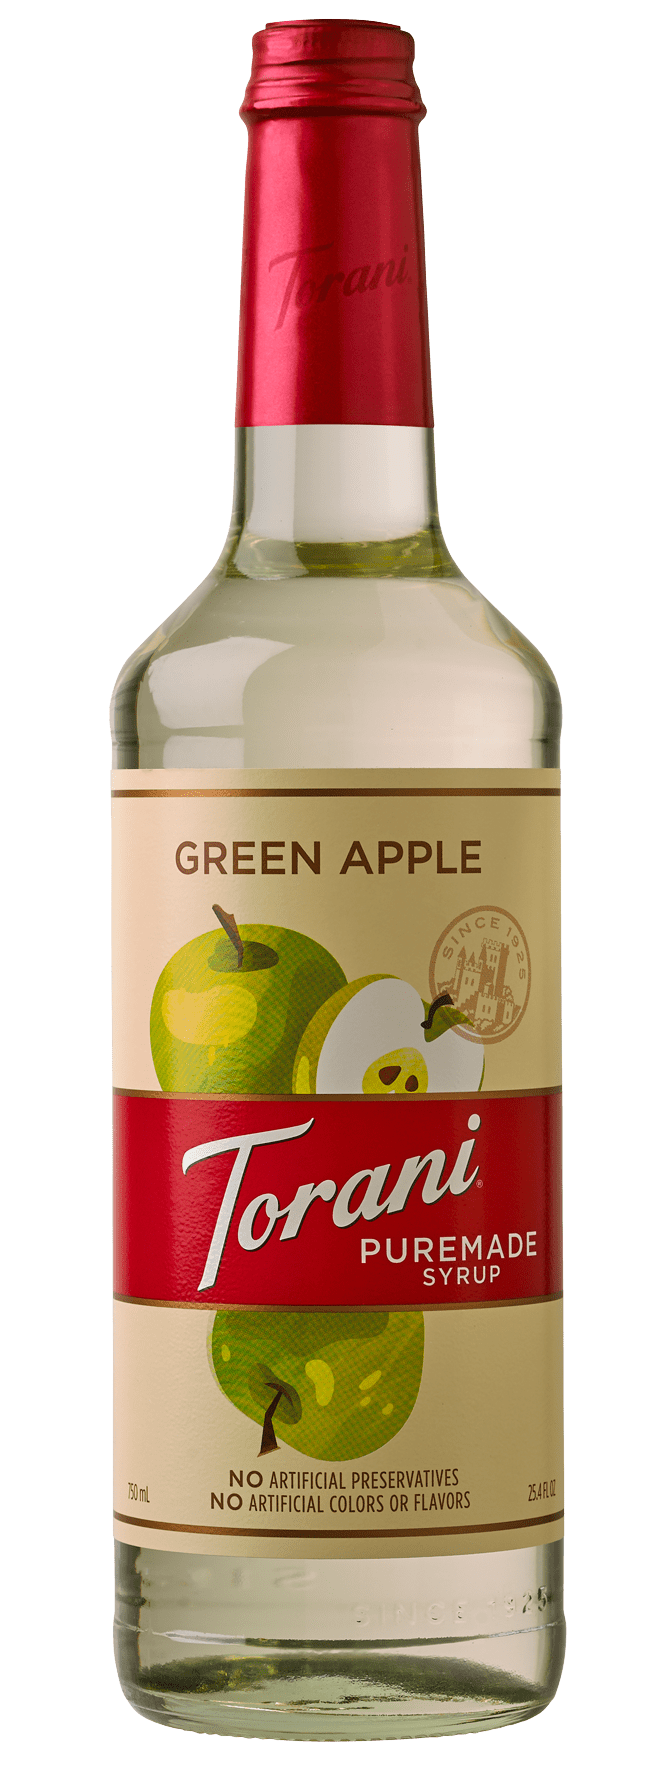 Puremade Green Apple Syrup image